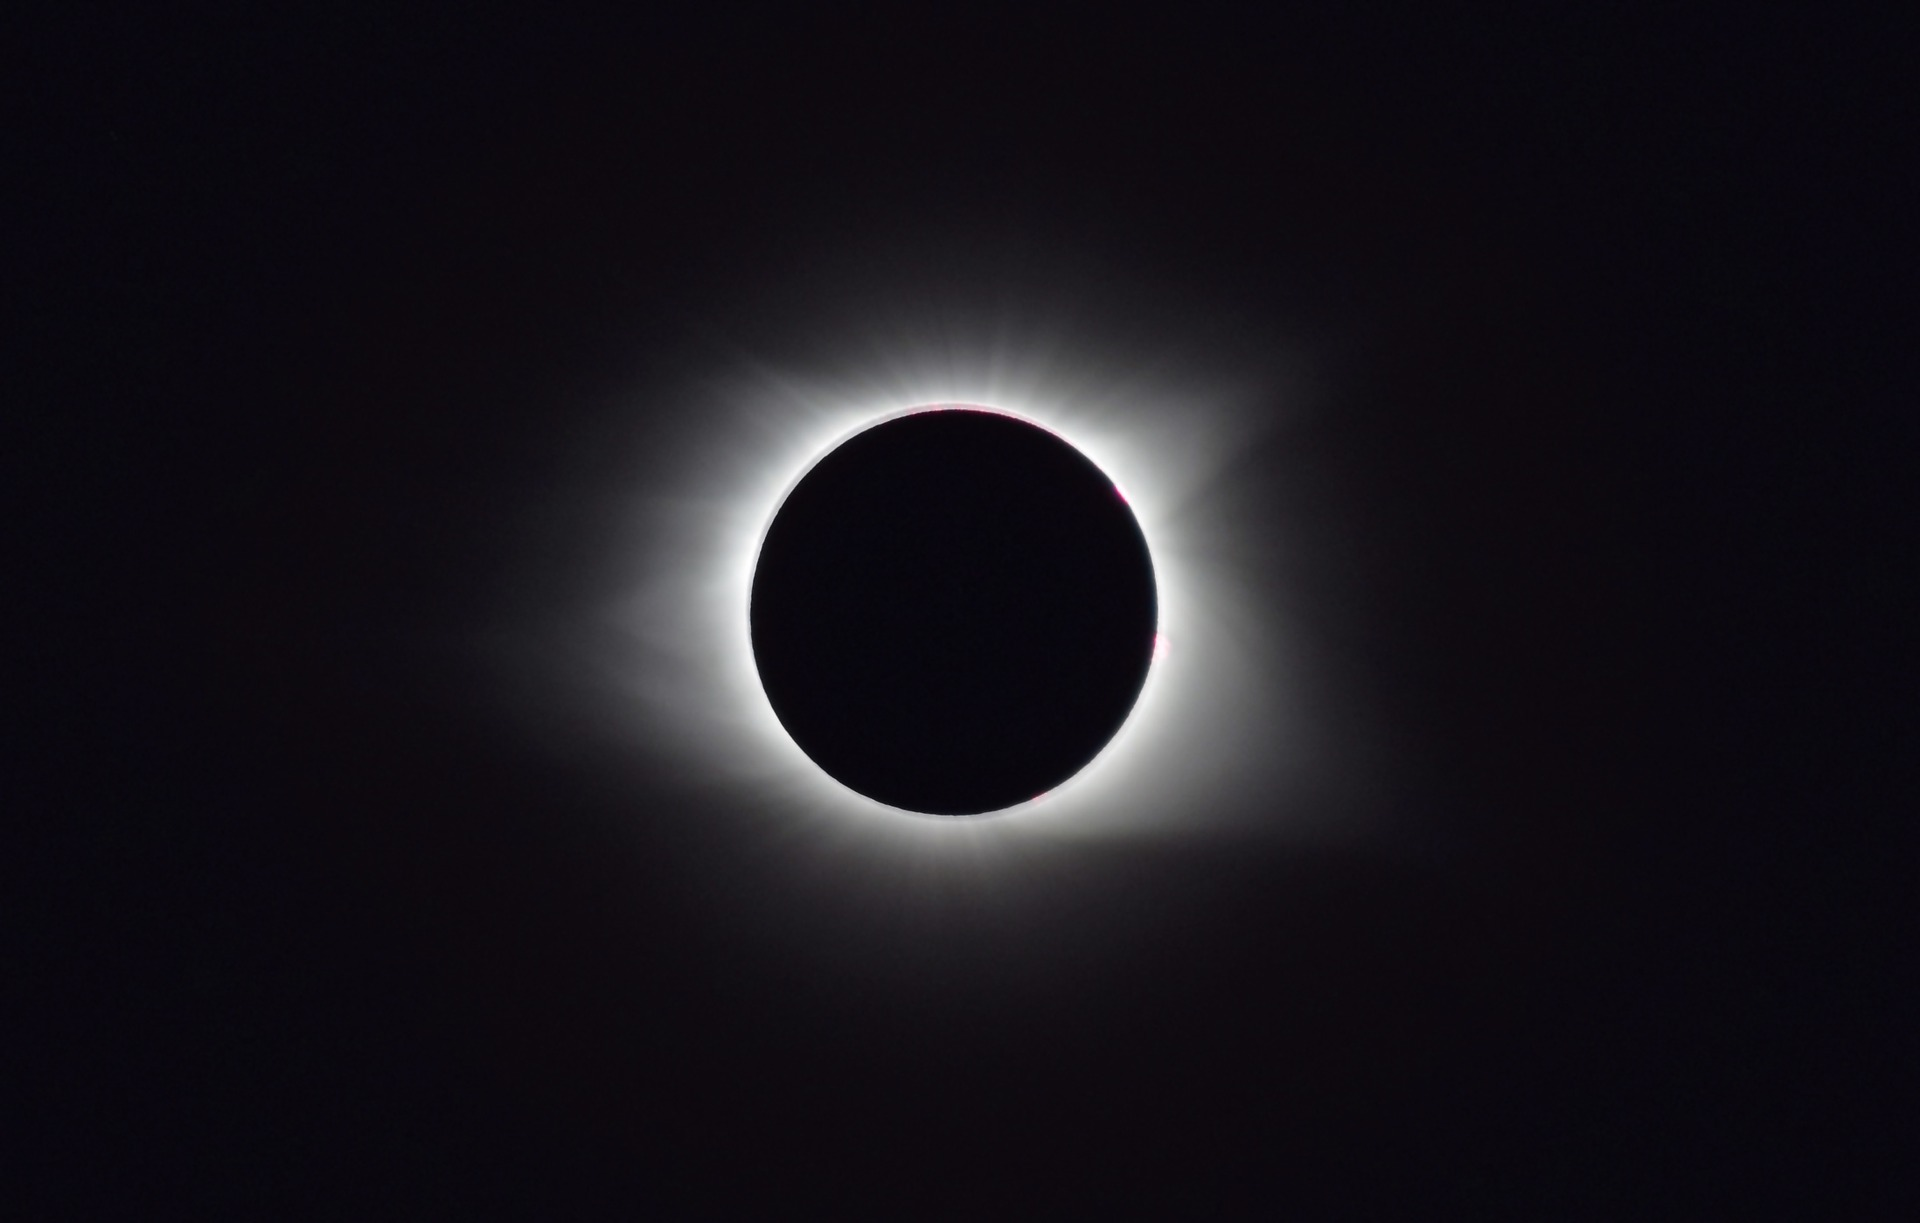 solar-eclipse-2017-2670350_1920.jpg